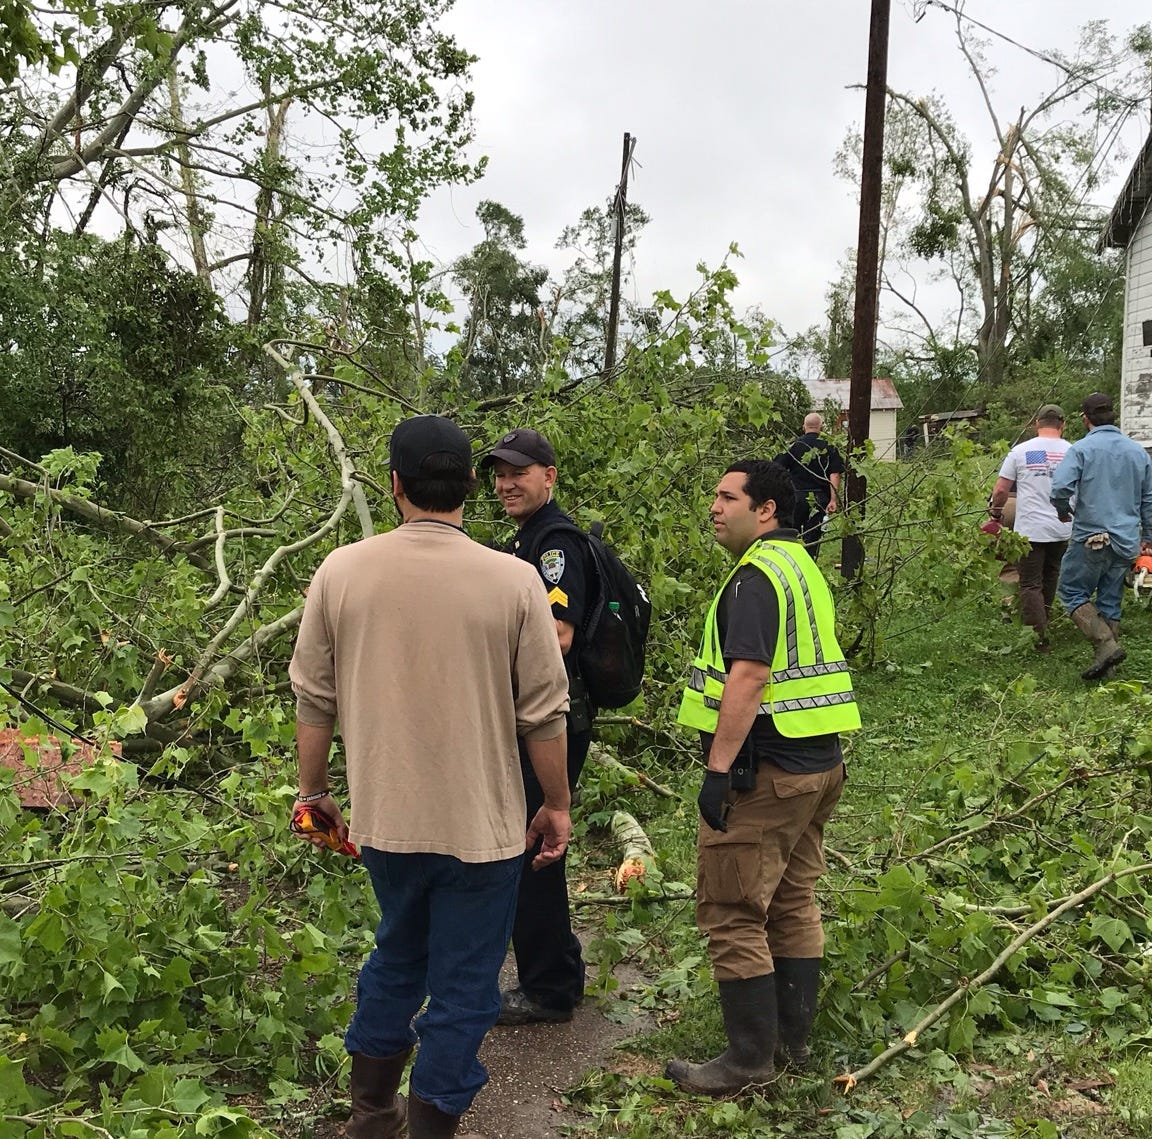 UPDATE: Governor heads to Ruston to assess damage, offer support,  tornado kills 2